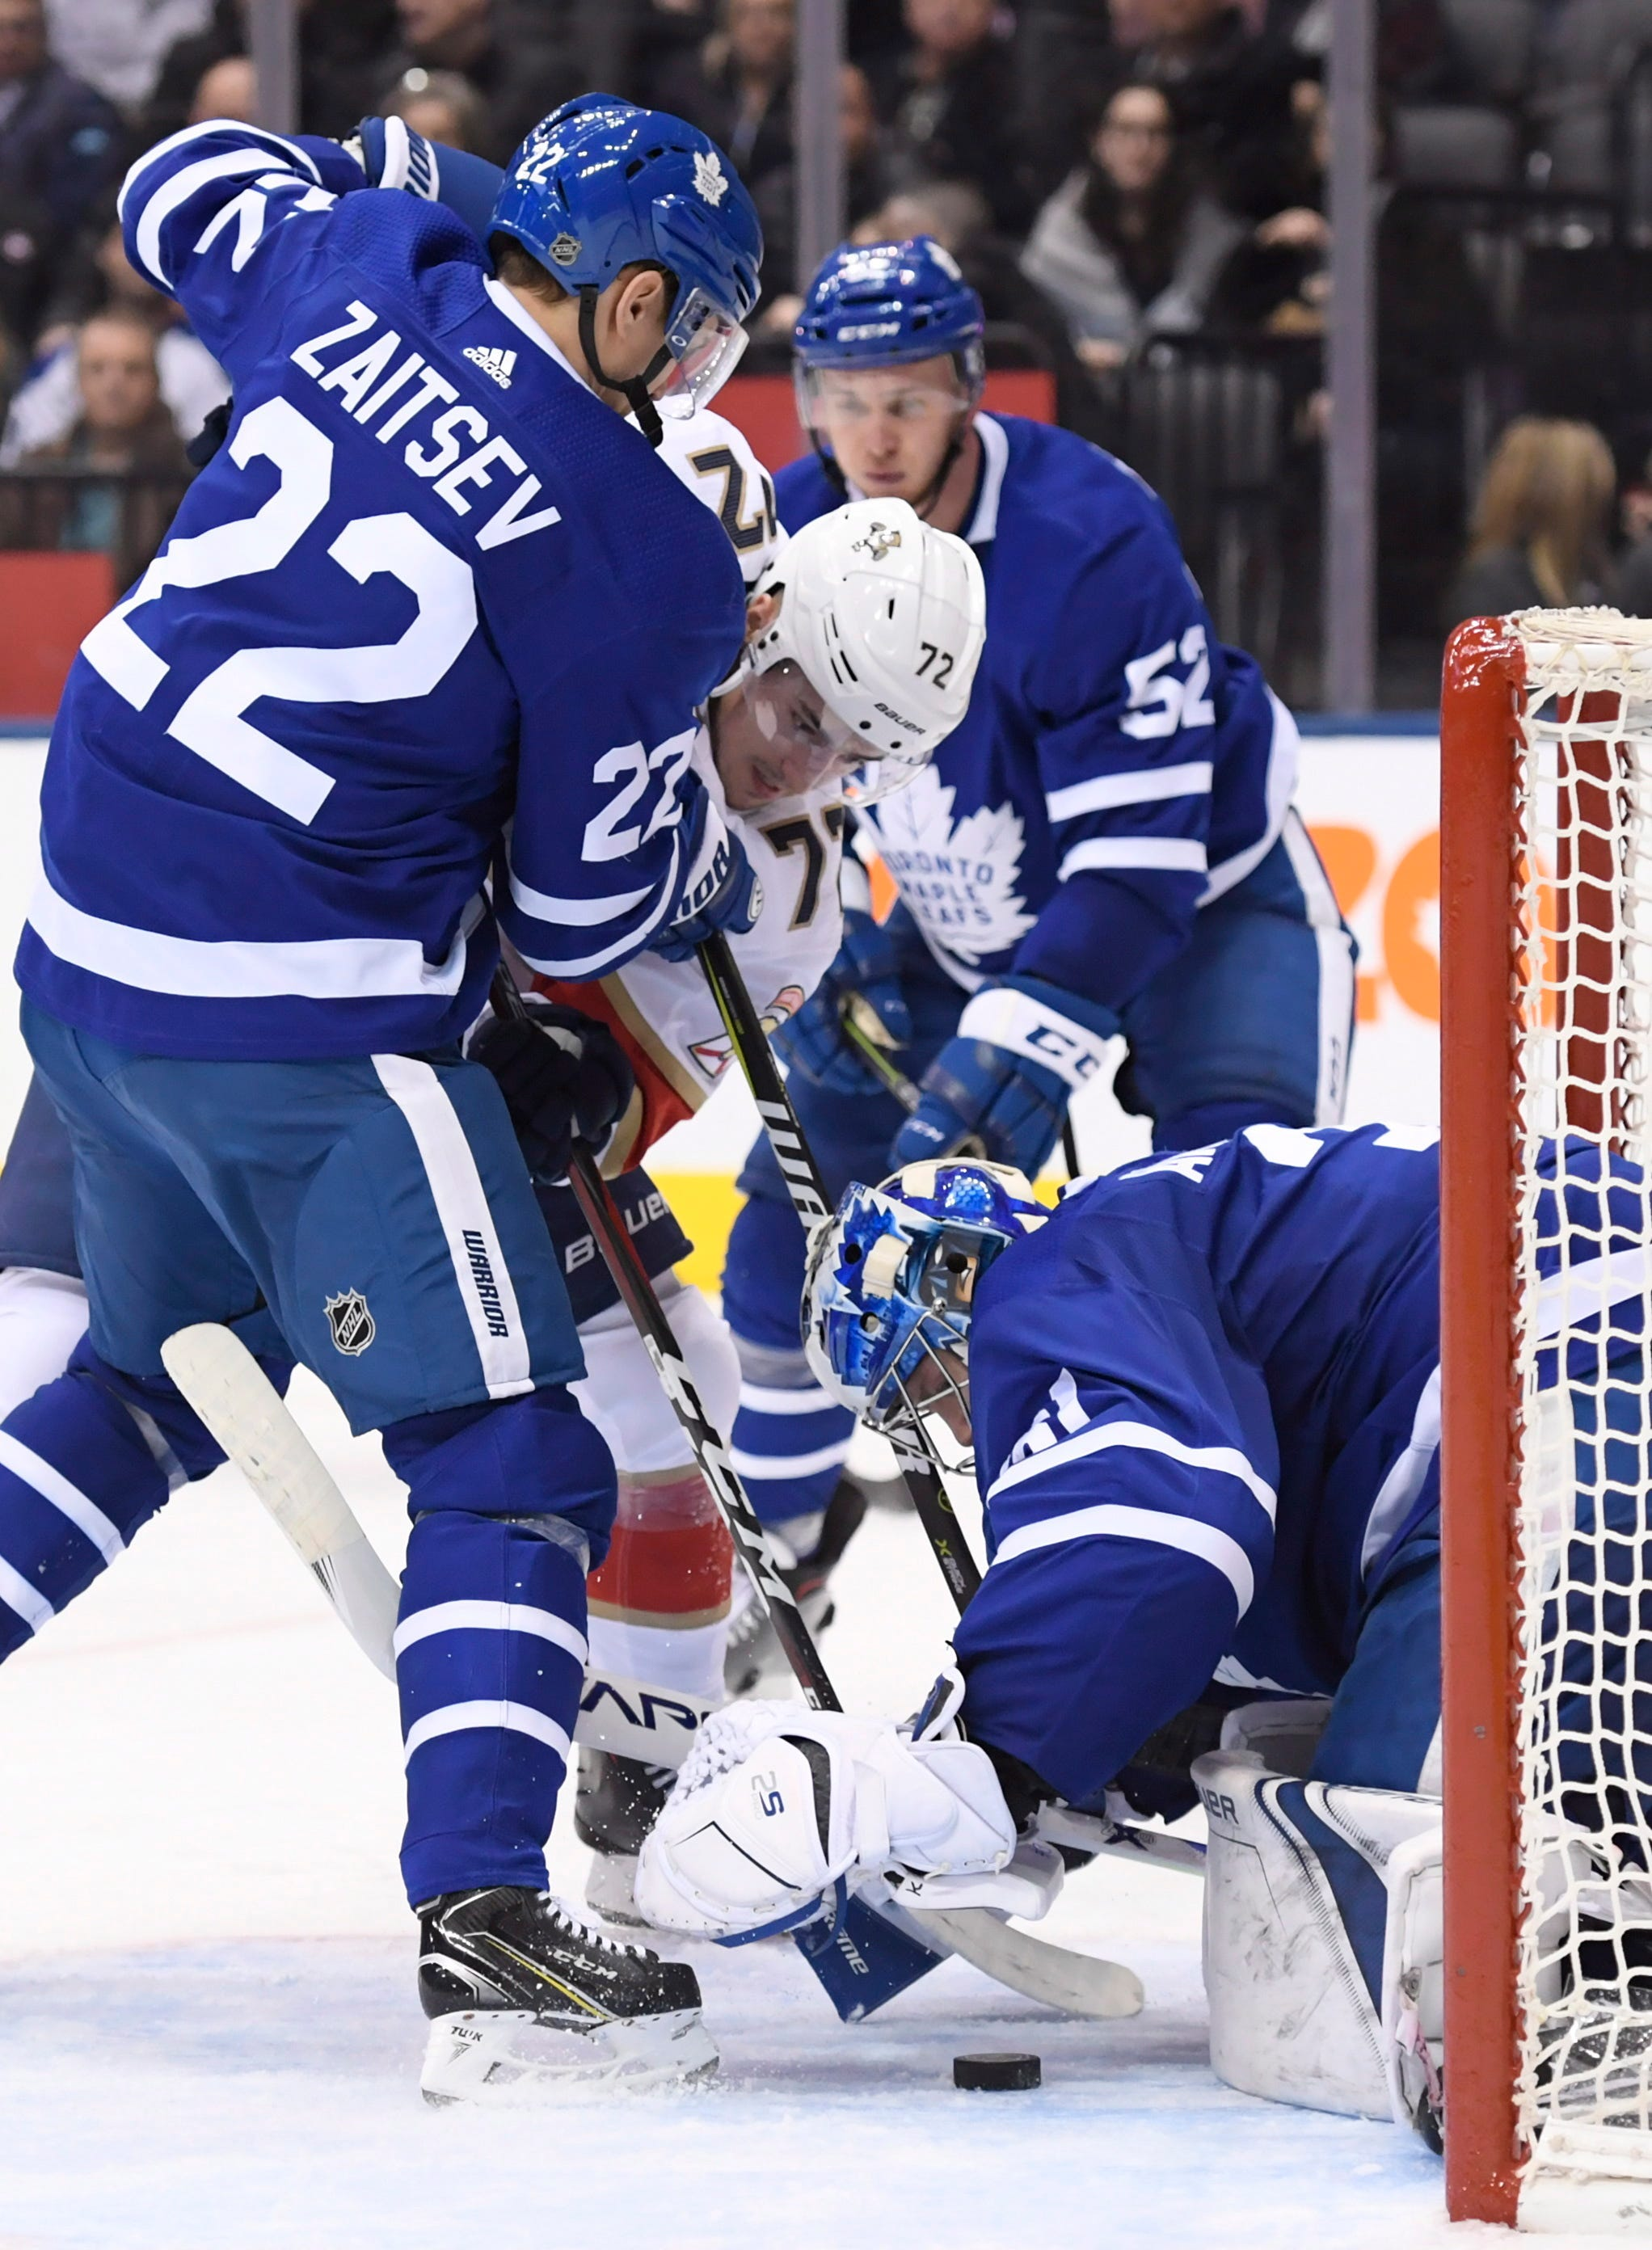 Matthews, Tavares help Maple Leafs rout Panthers 6-1